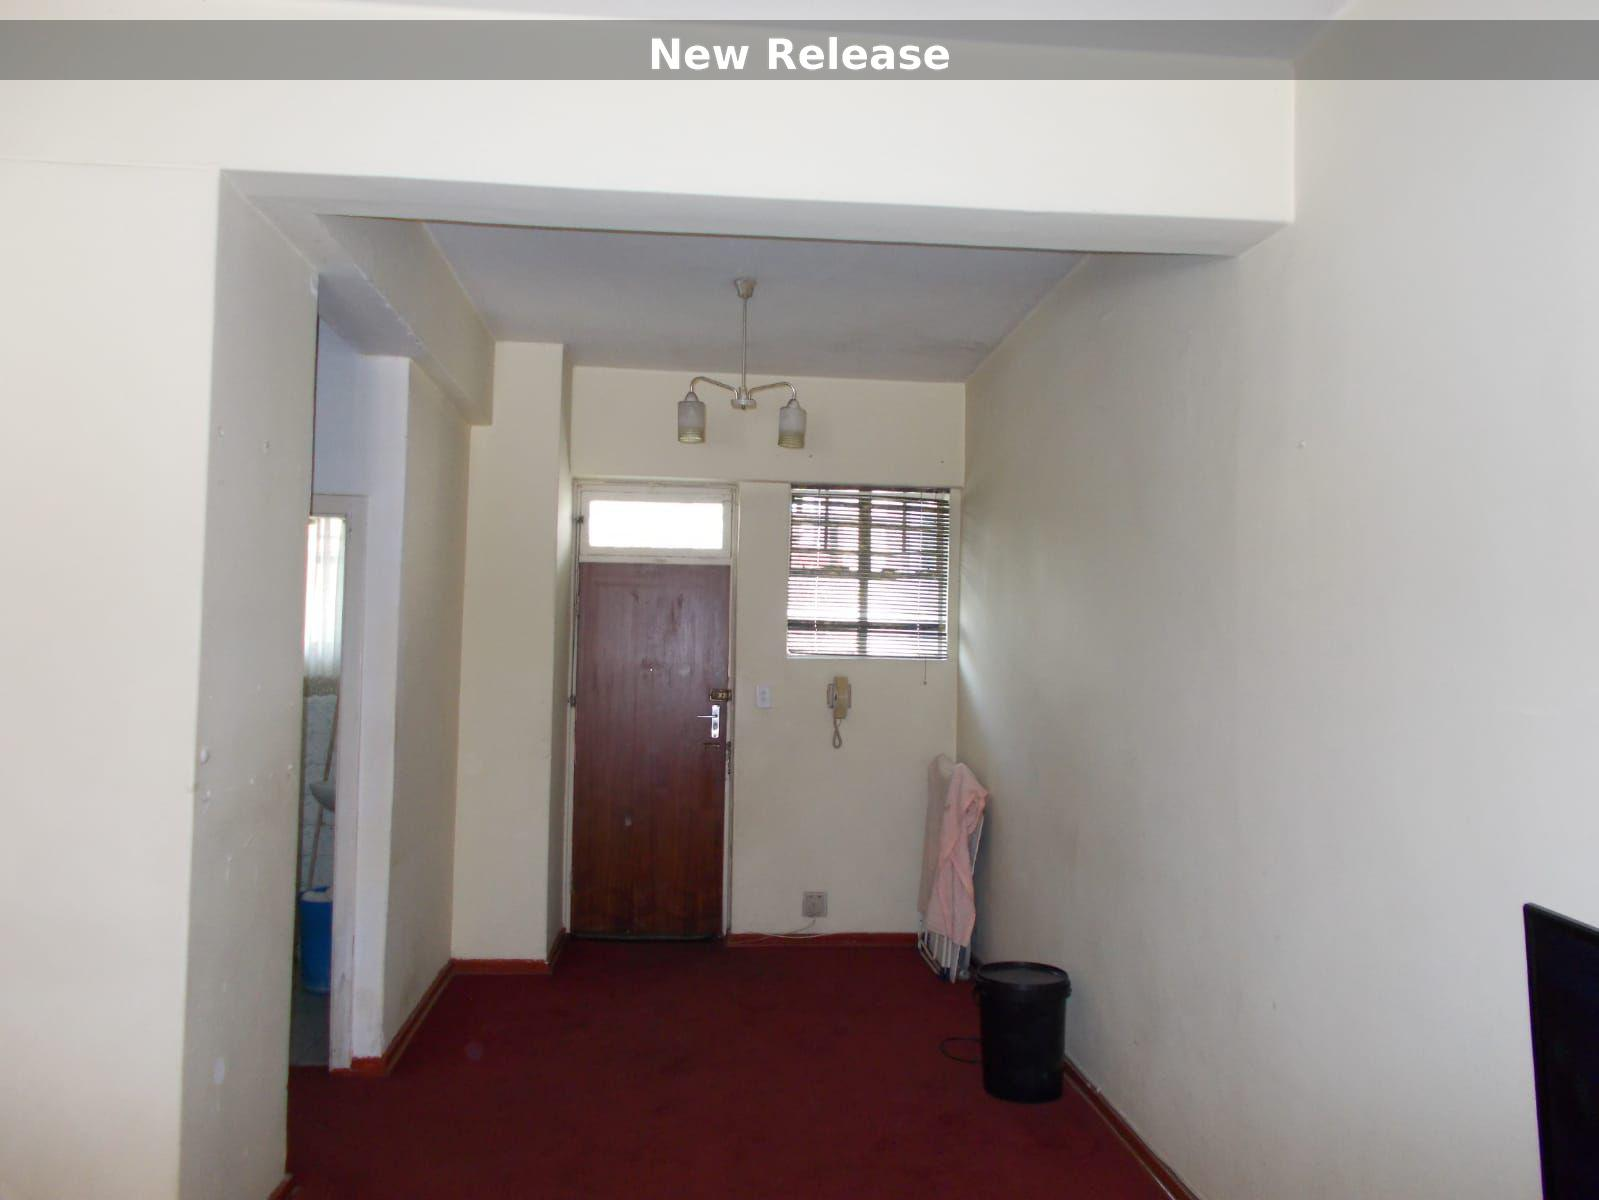 Apartment in Hillbrow - WhatsApp Image 2021-01-12 at 13.03.08 (2).jpeg